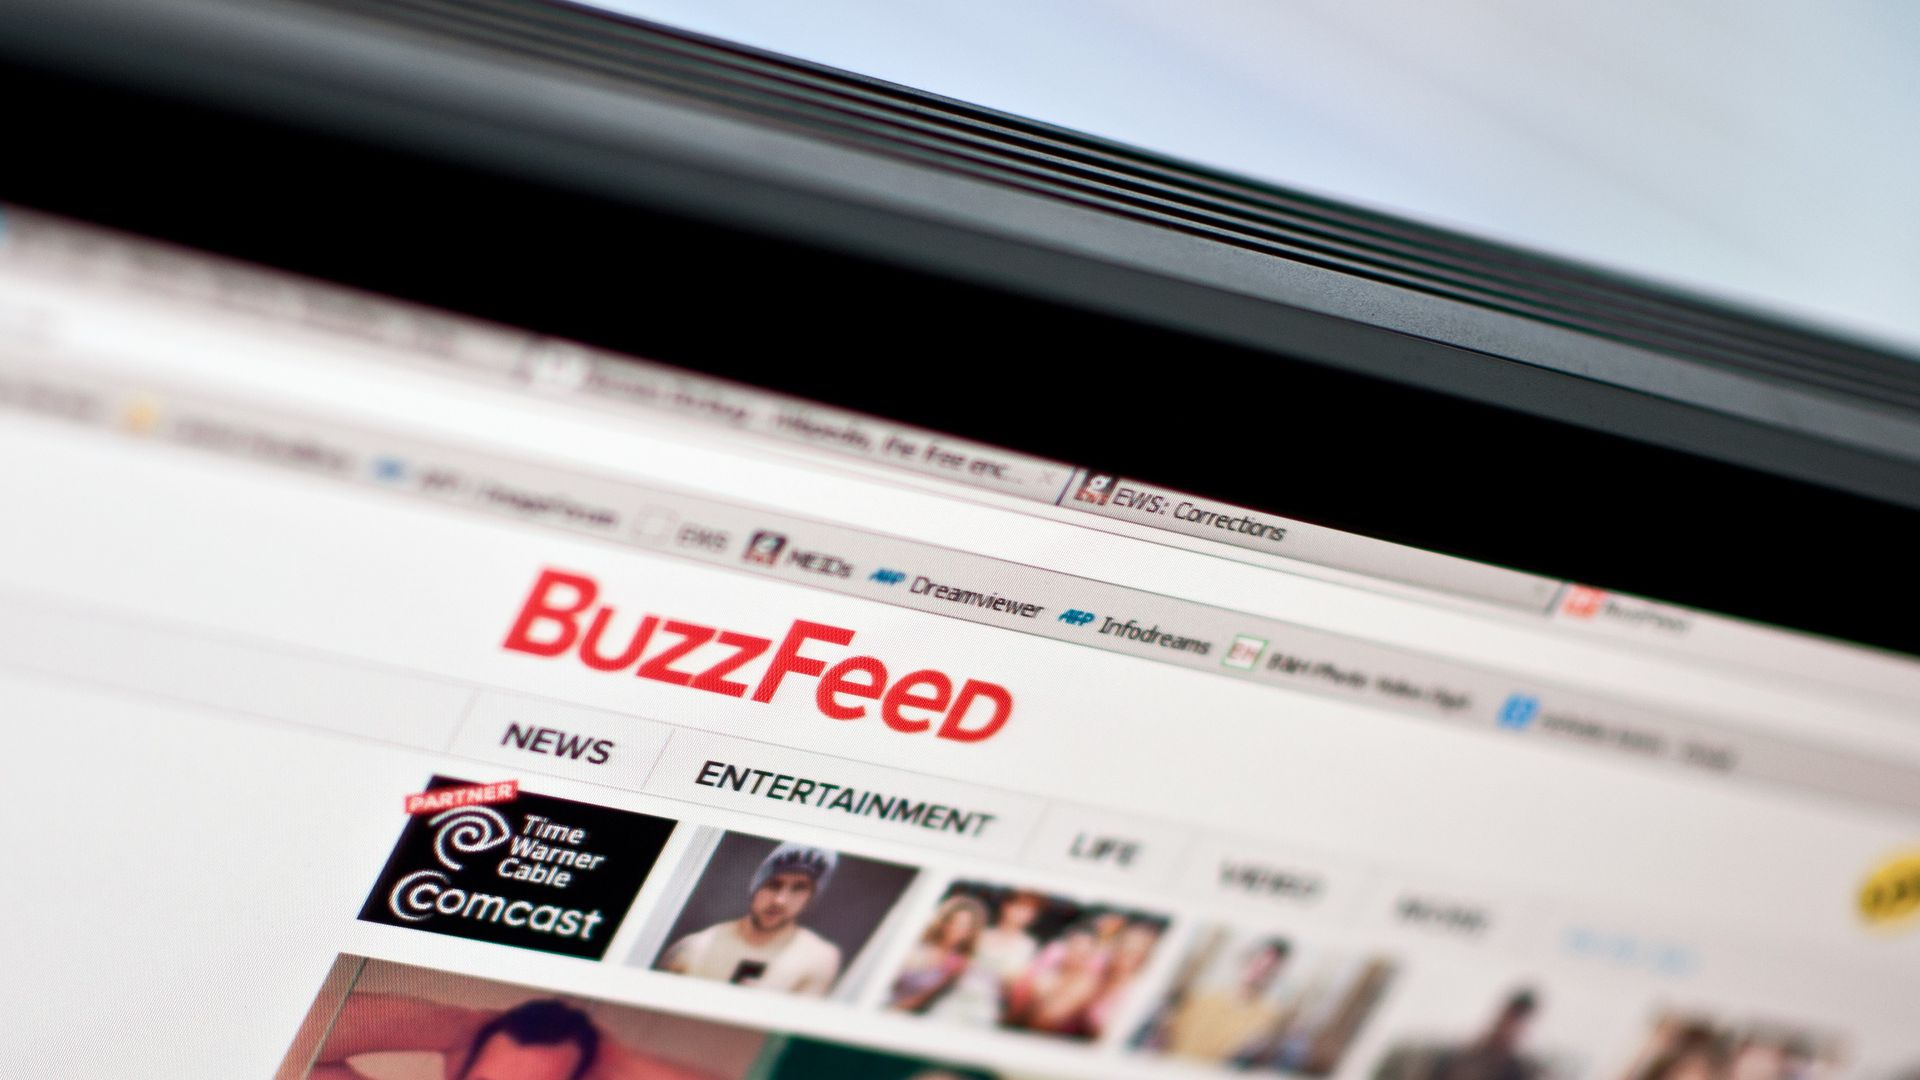 Buzzfeed Looks To Hire A President As It Expands Its Revenue